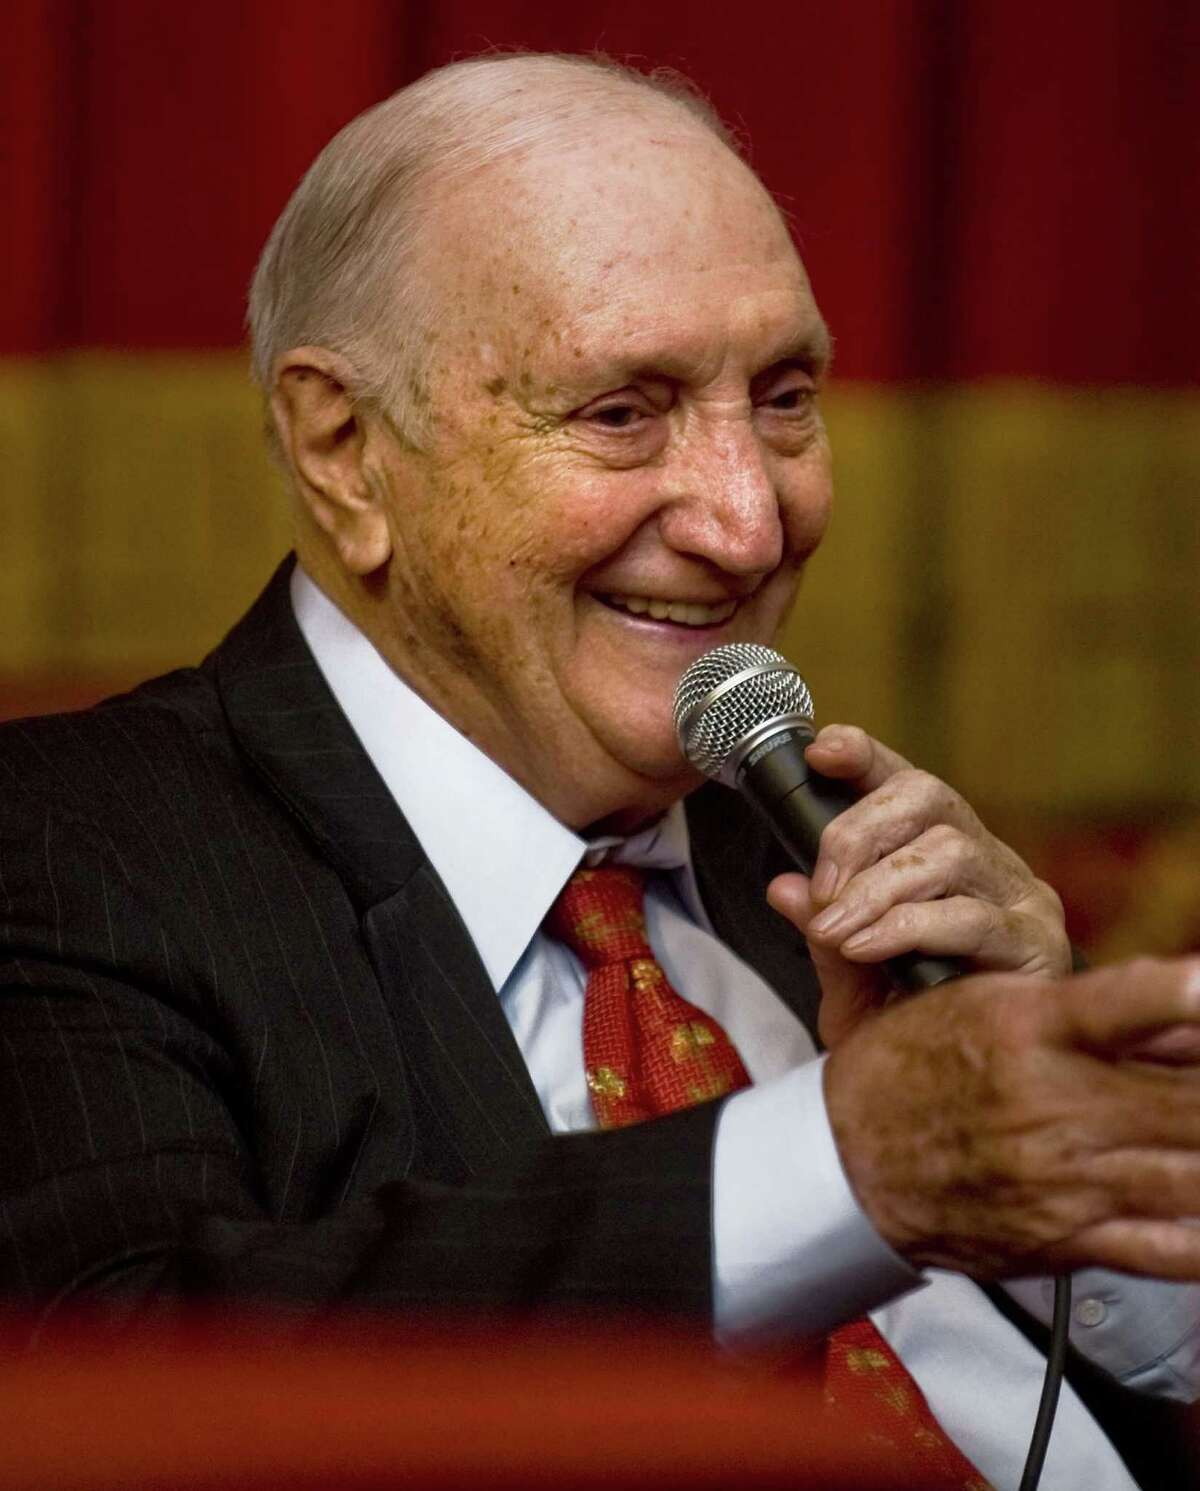 Former pitcher Ralph Branca answered fans' questions in Stamford's Avon Theatre in October, 2013. He has died at age 90.